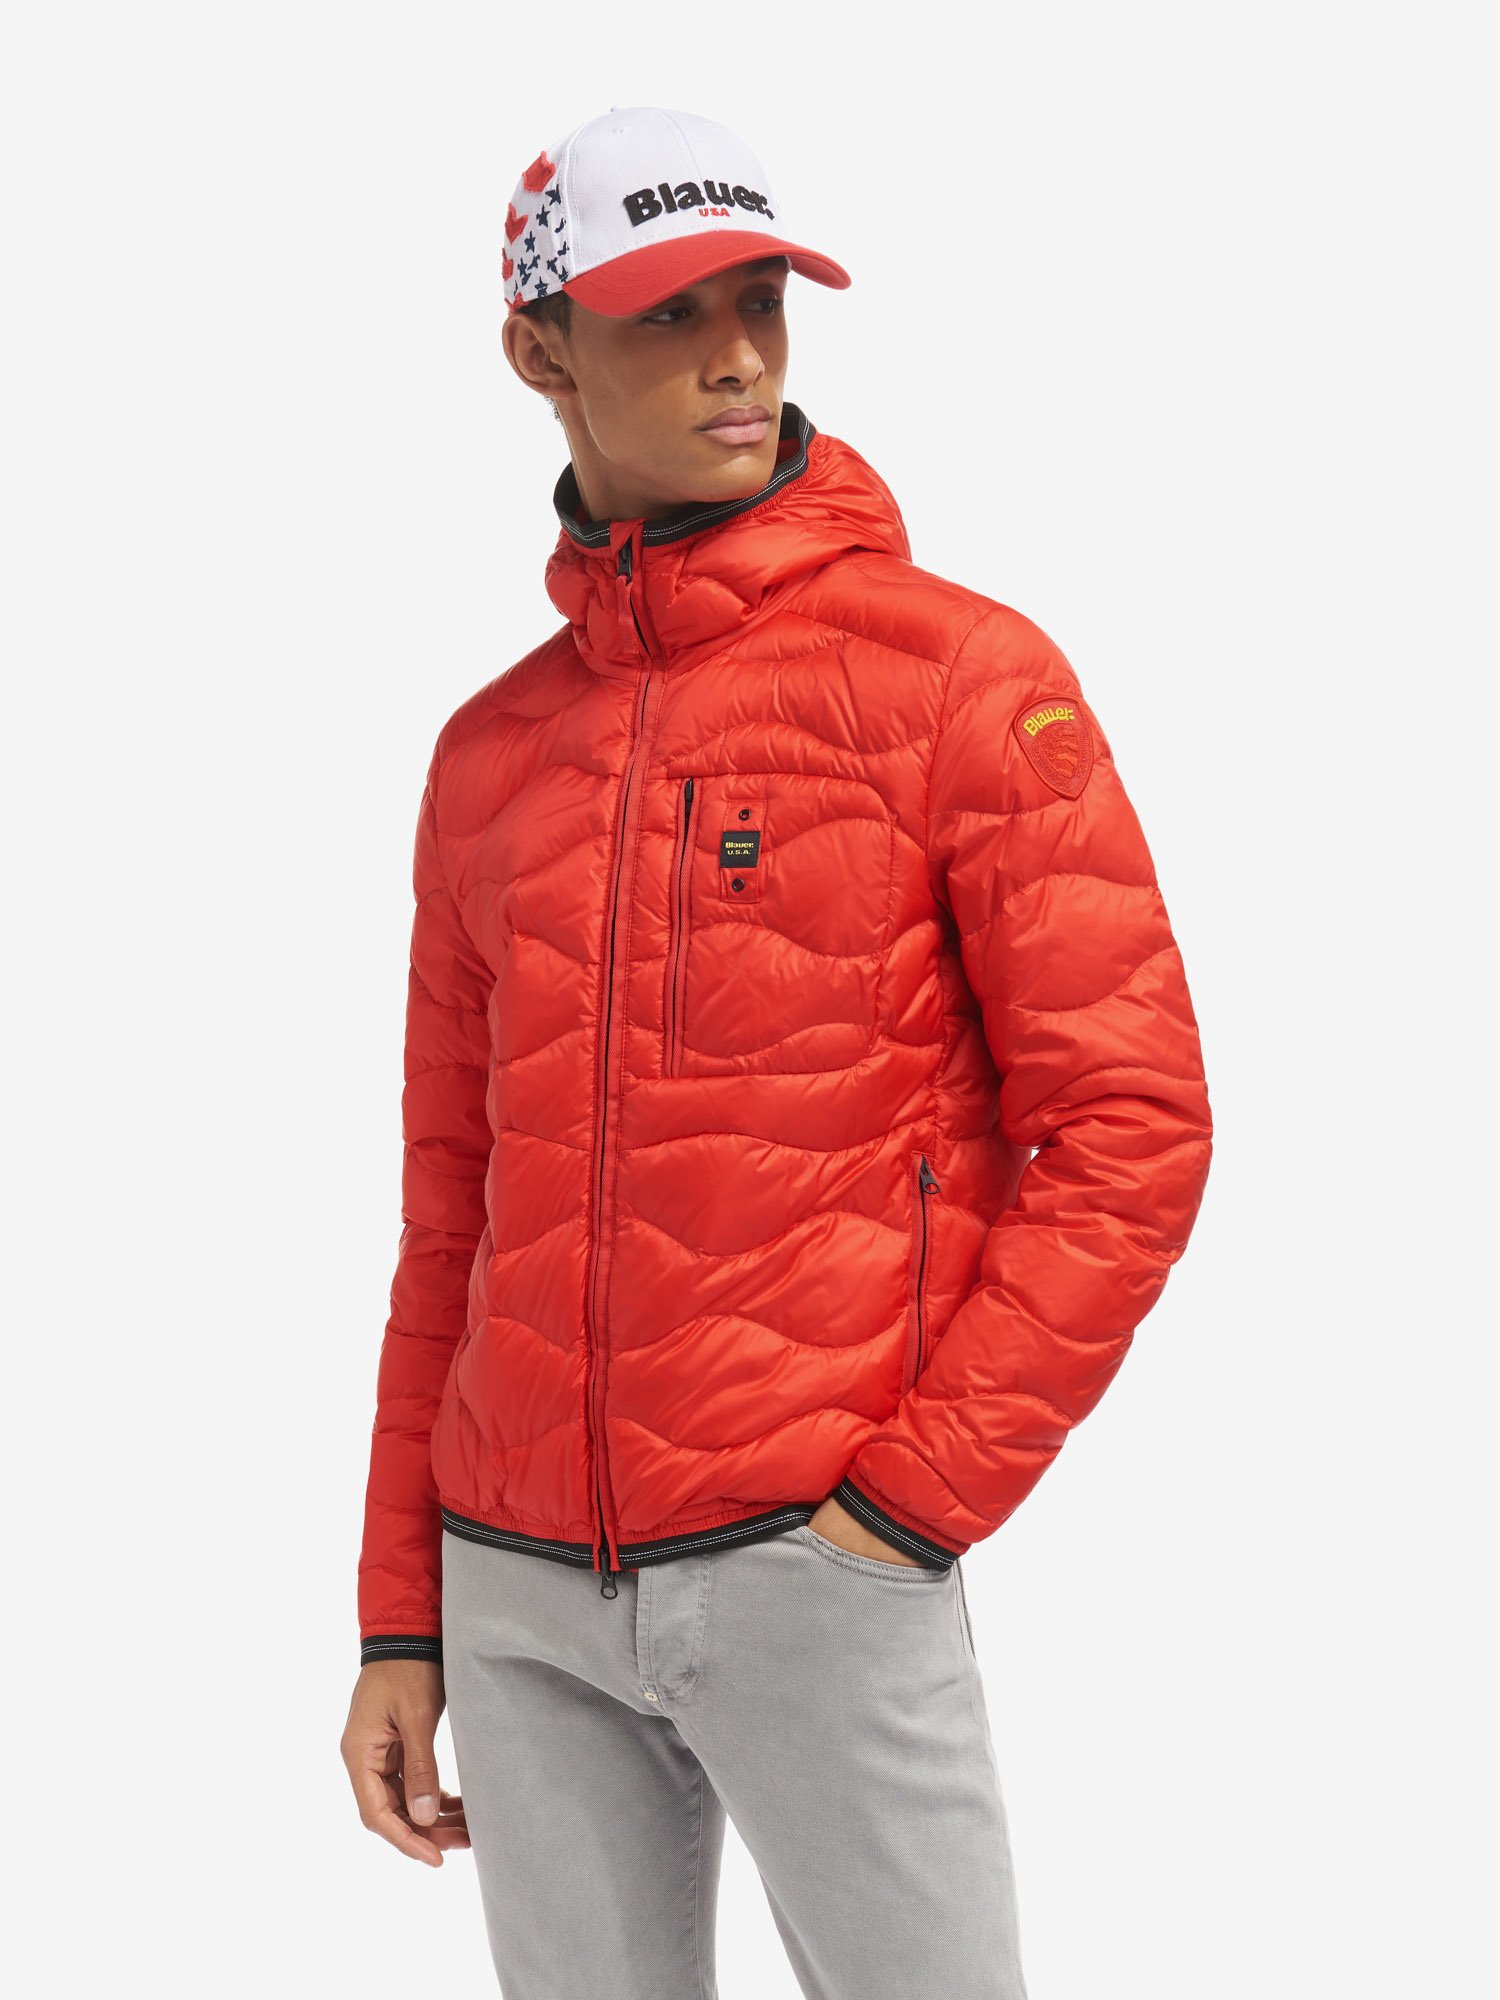 JEFFREY WAVE-QUILTED DOWN JACKET WITH TRIMMED HOOD - Blauer